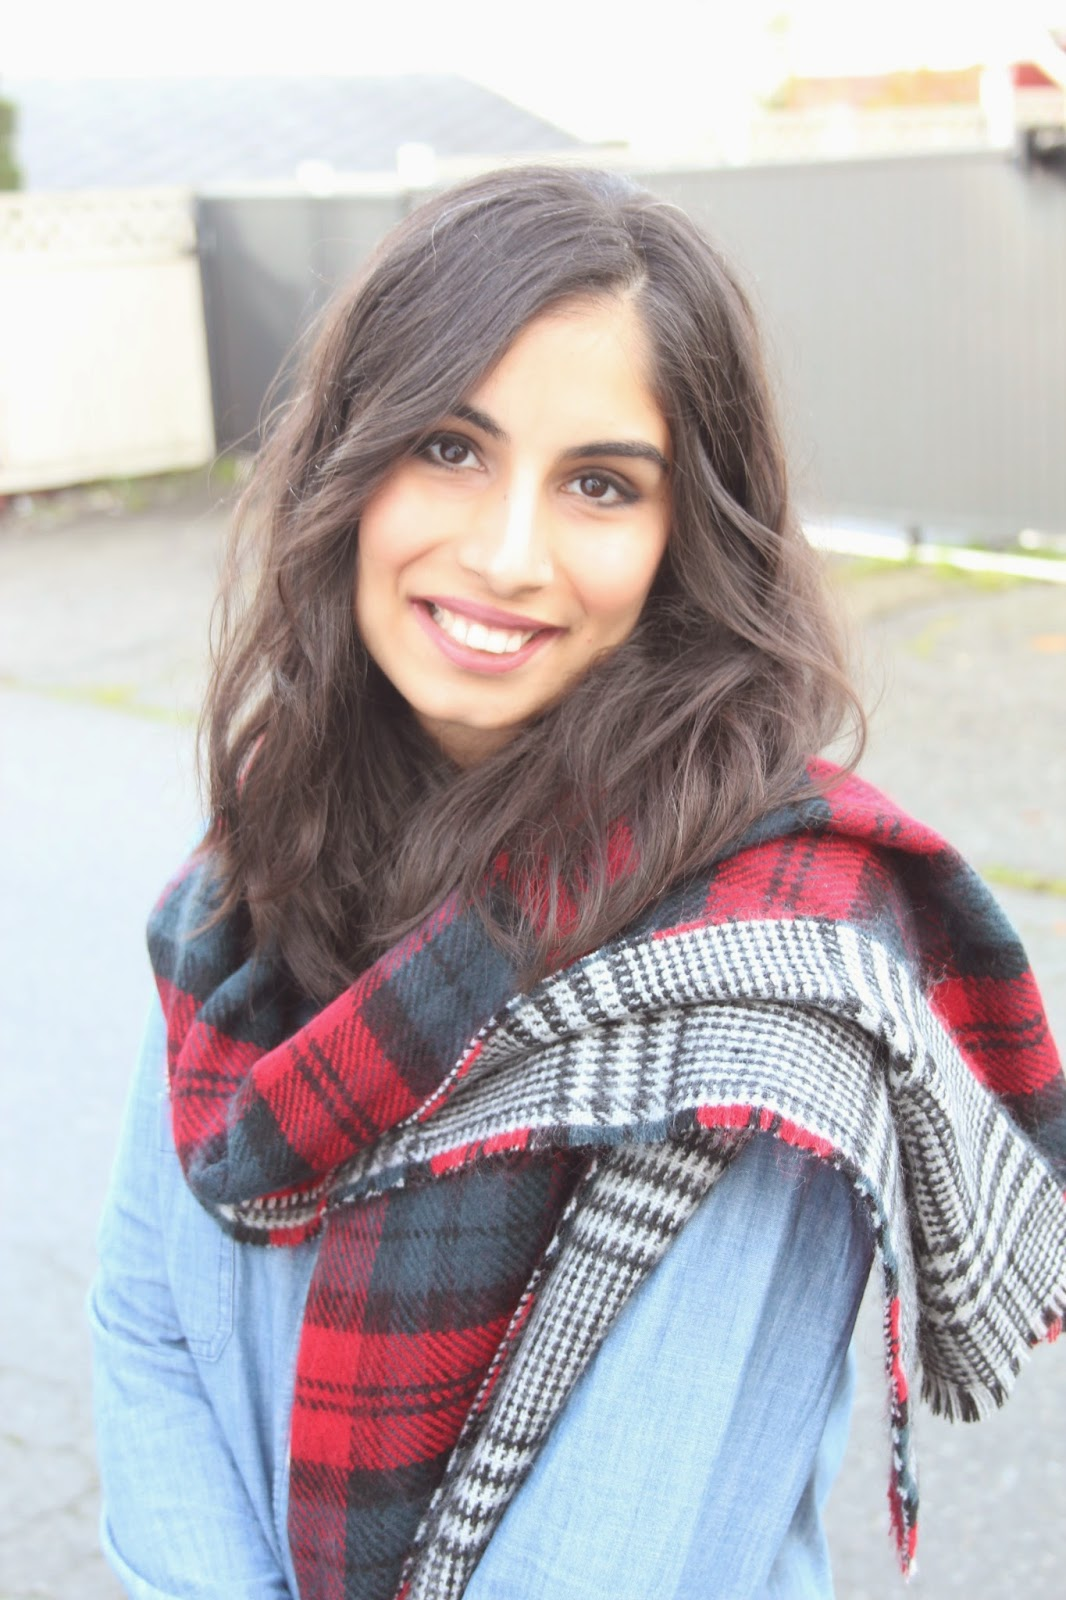 reversible plaid scarf and canadian tuxedo | Footnotes and Finds